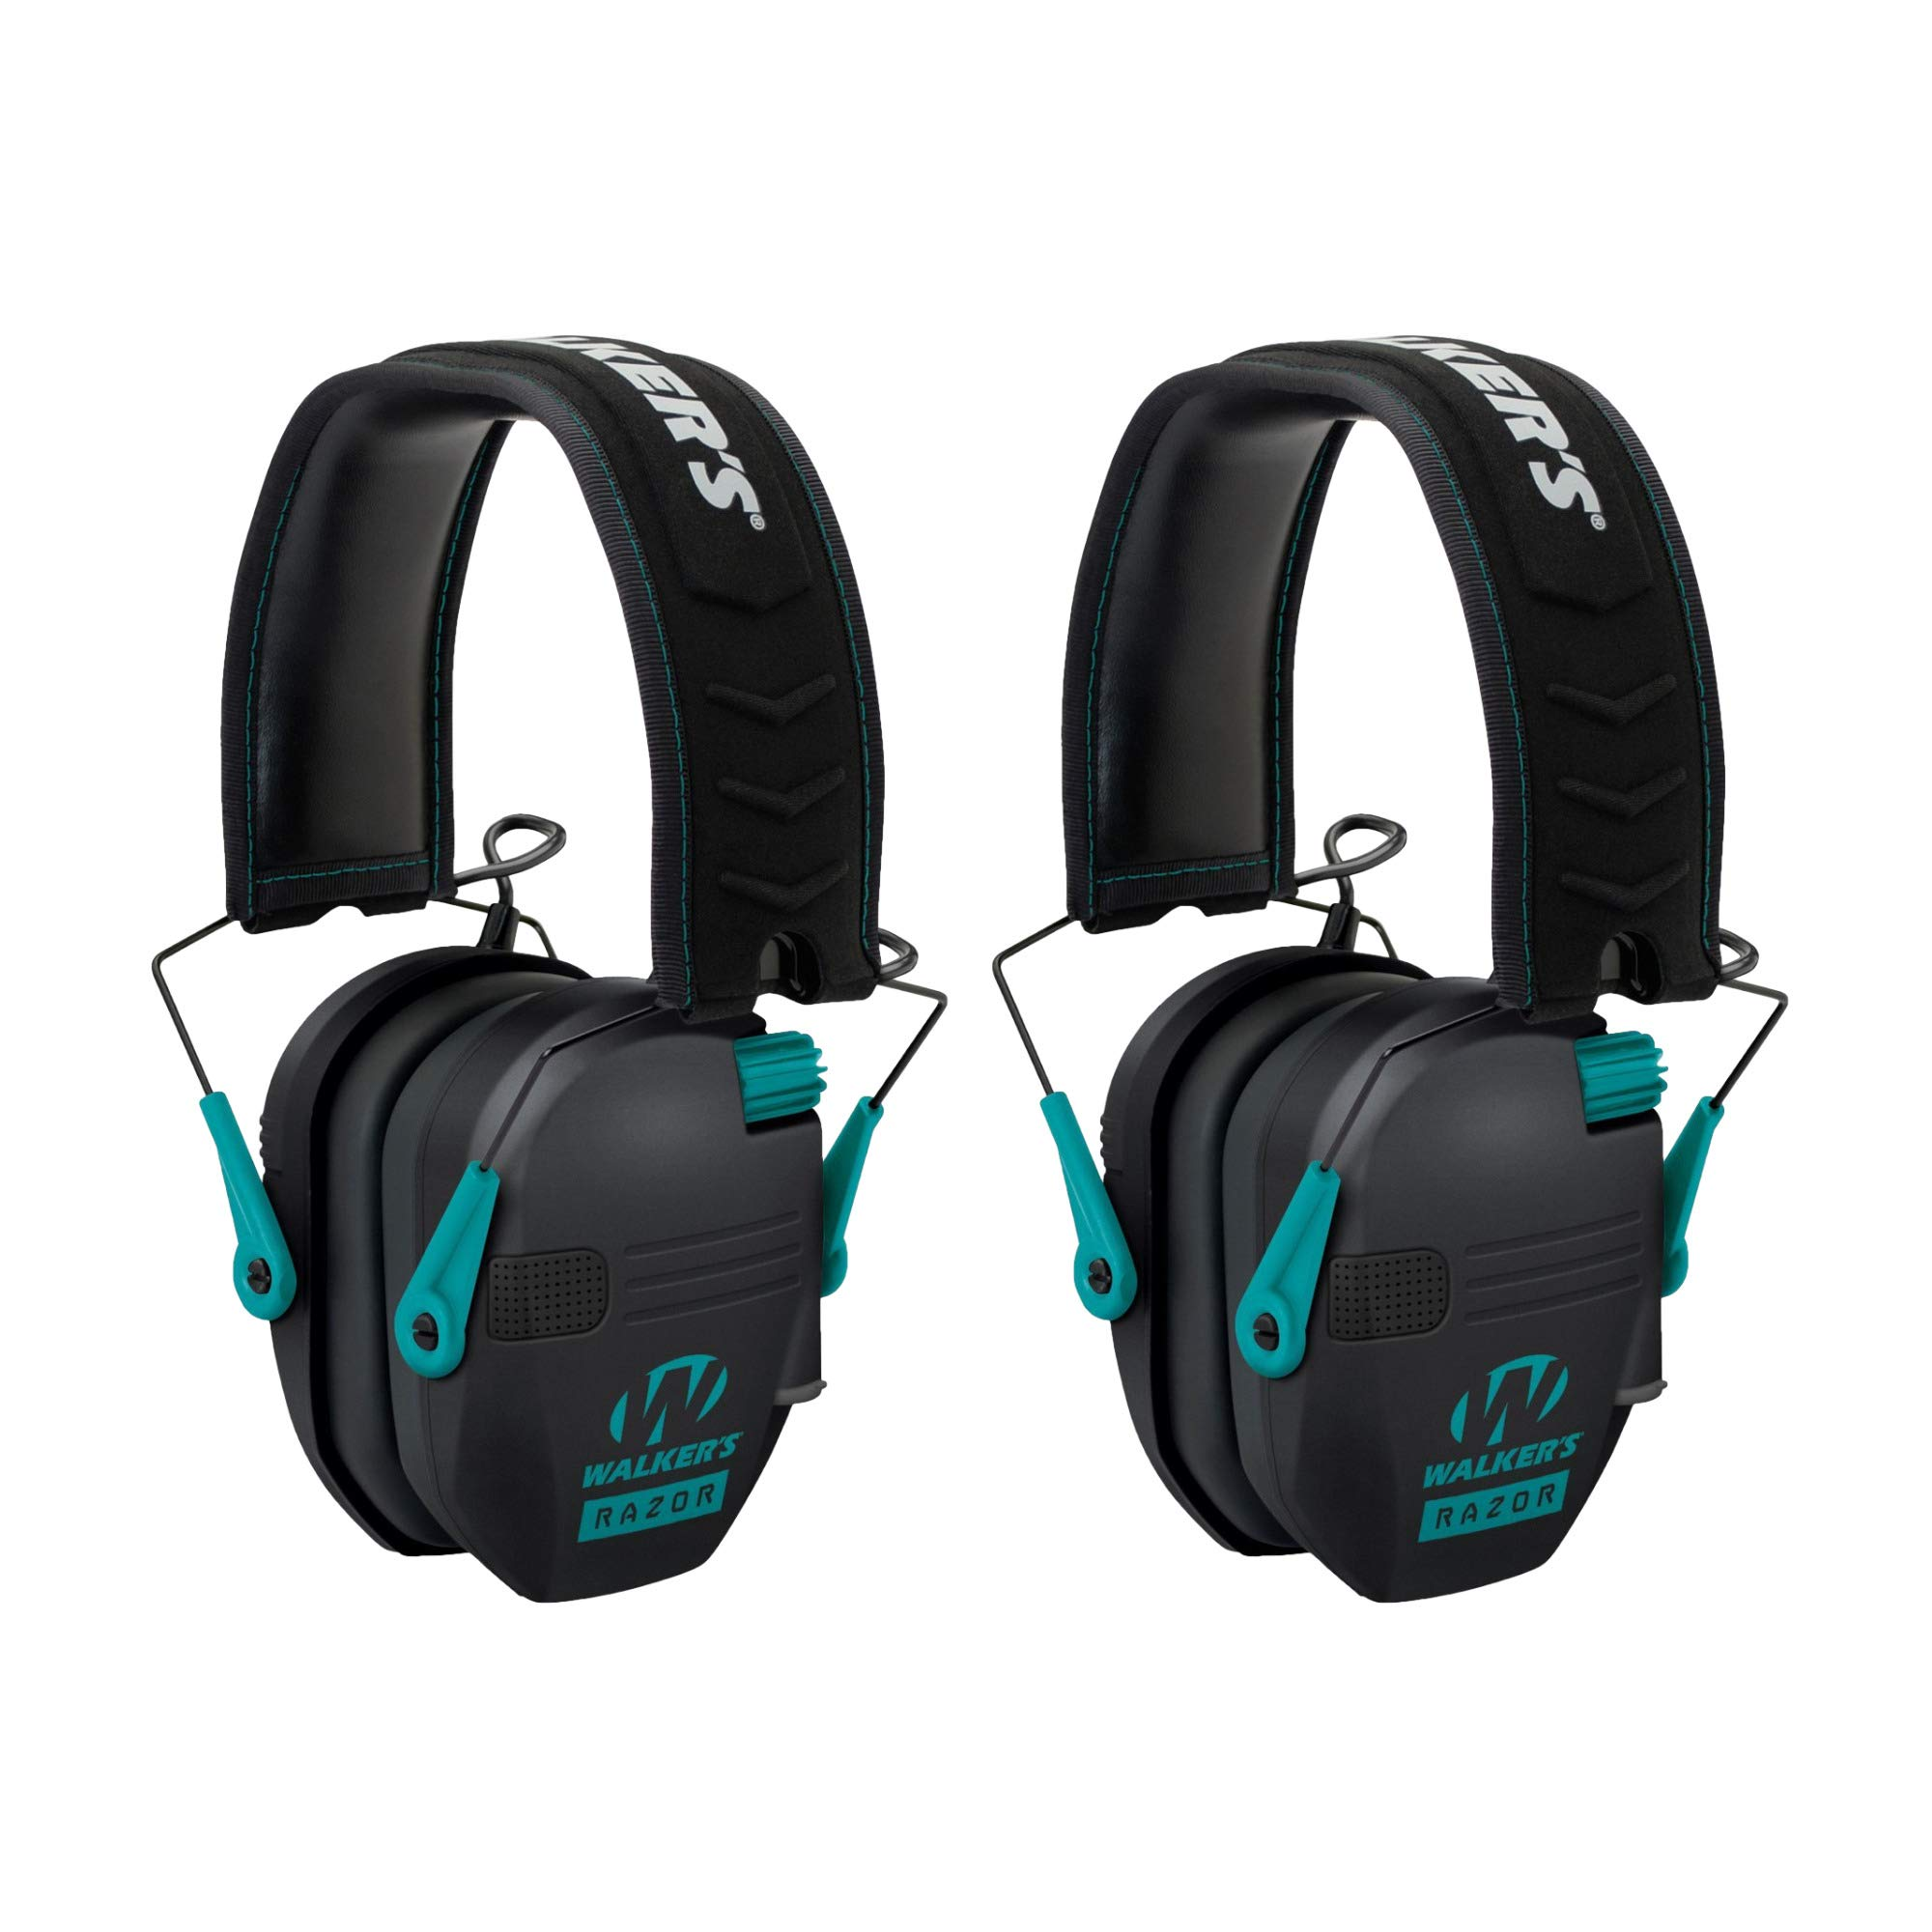 Walkers Razor Slim Electronic Shooting Muffs 2-Pack, Teal (2 Items) by Walker's Game Ear